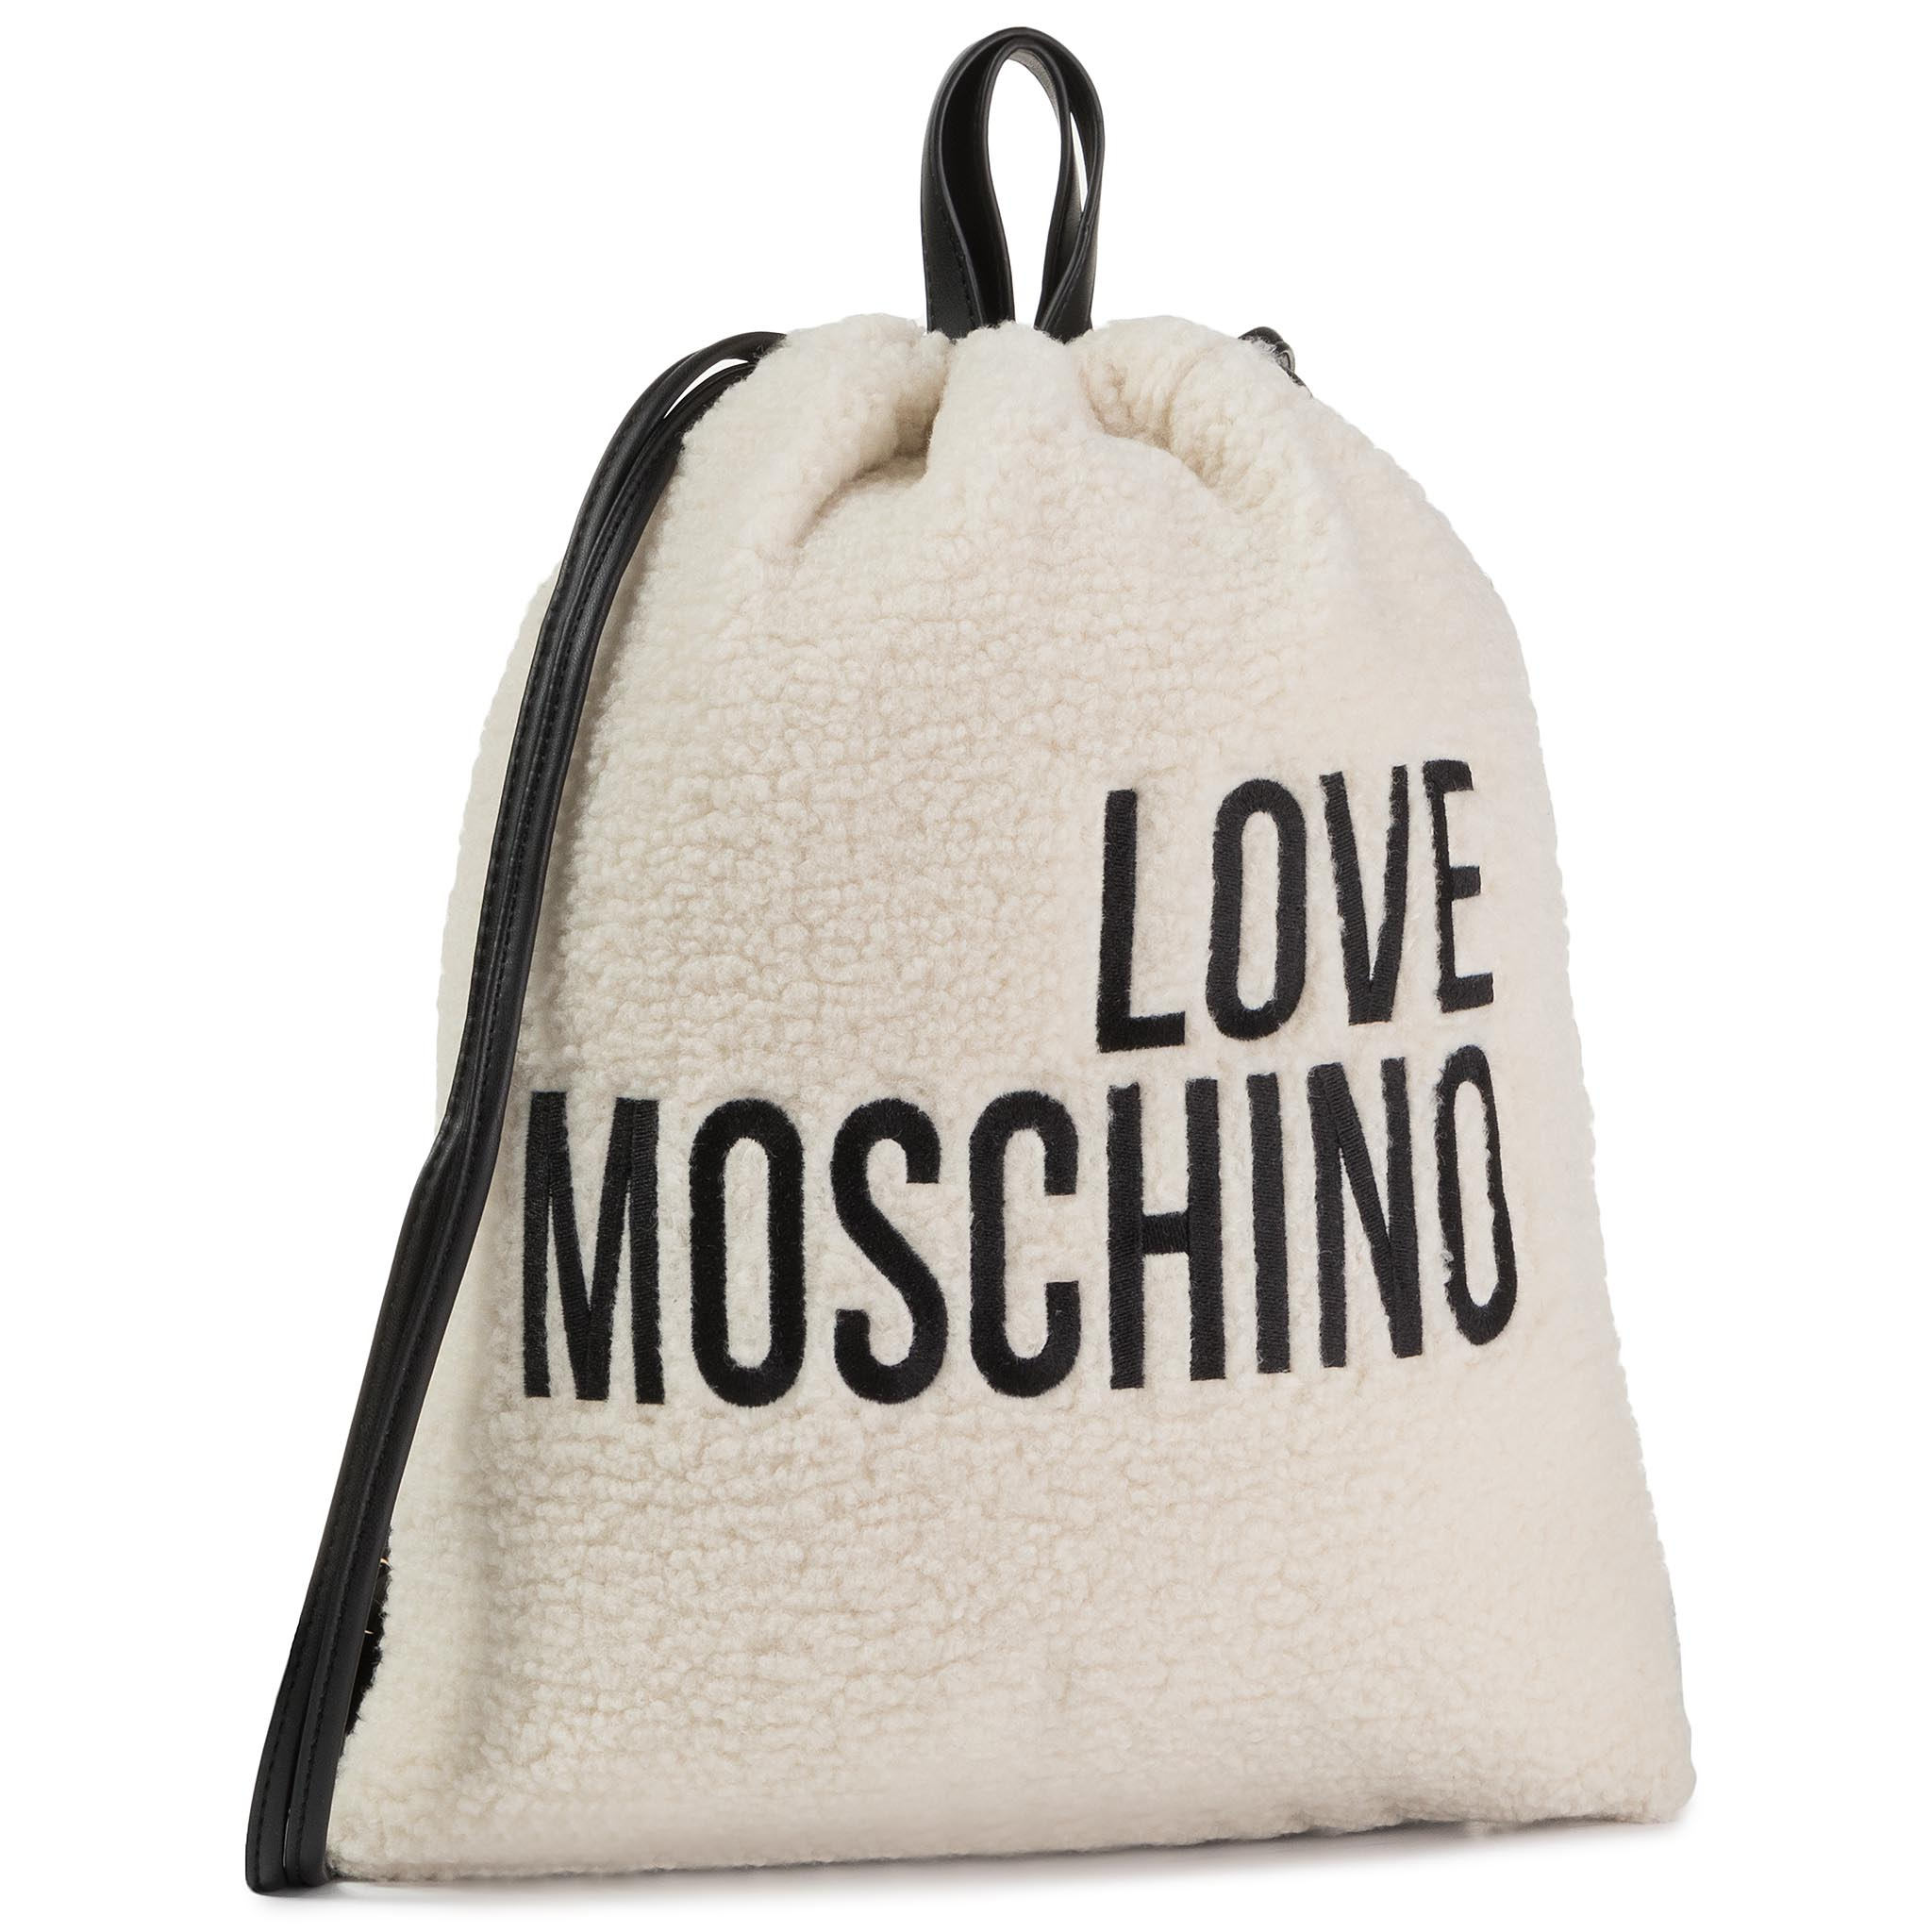 Rucsac Love Moschino - Jc4306pp08kp110a Nero imagine epantofi.ro